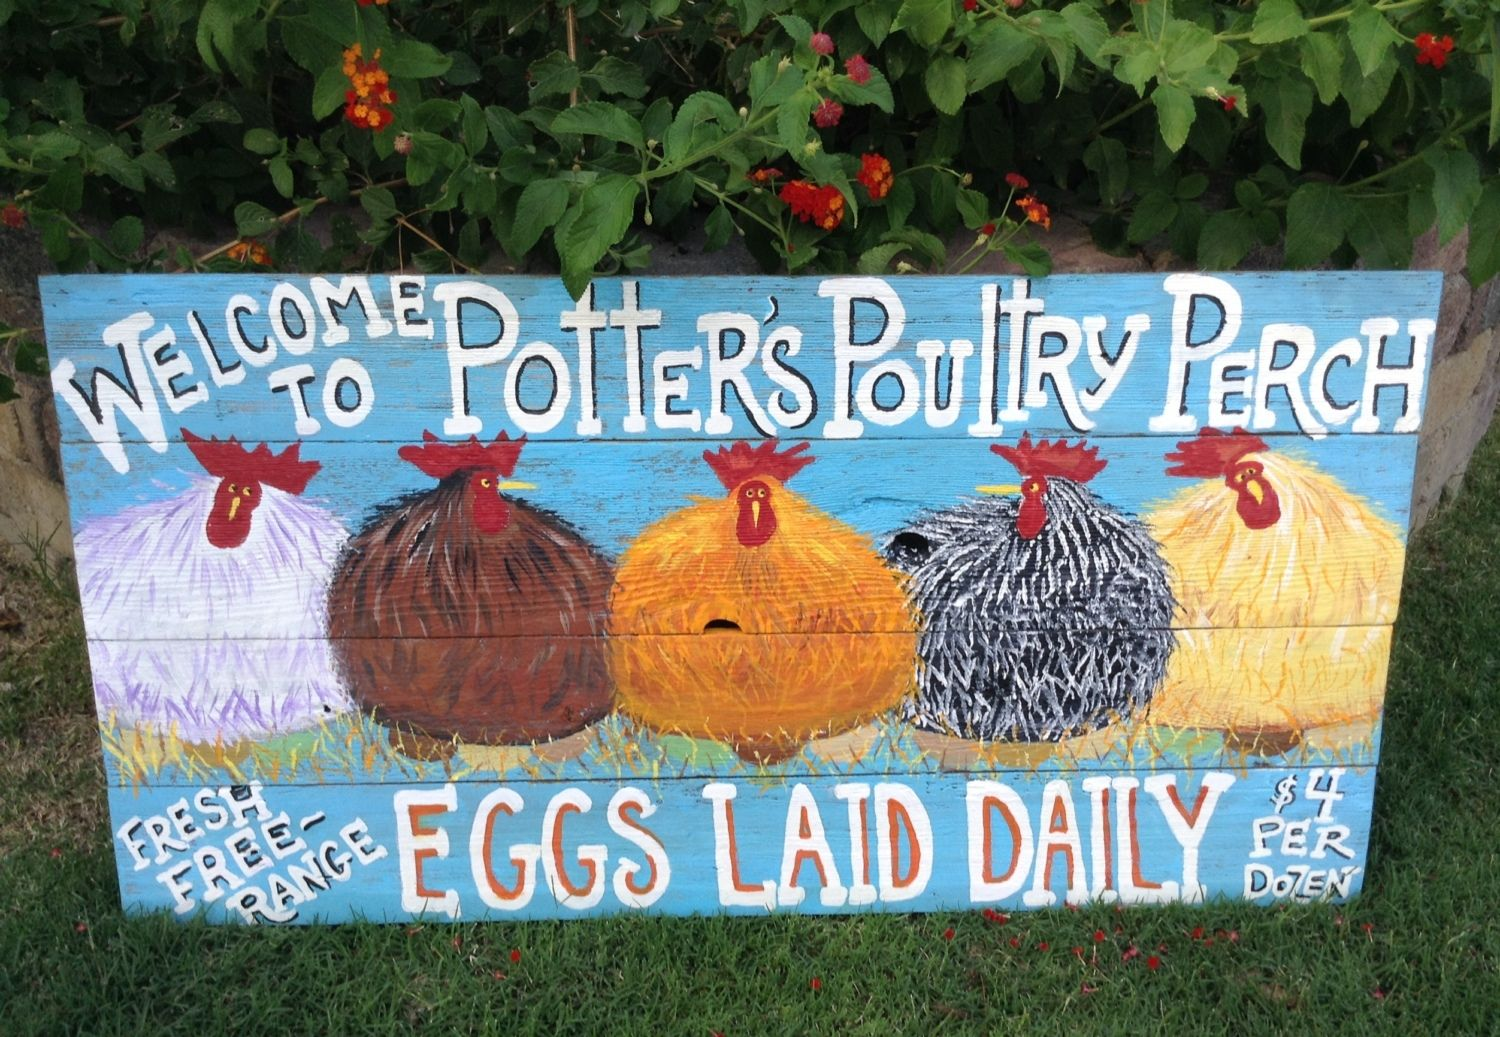 Potters Poultry Perch.jpg